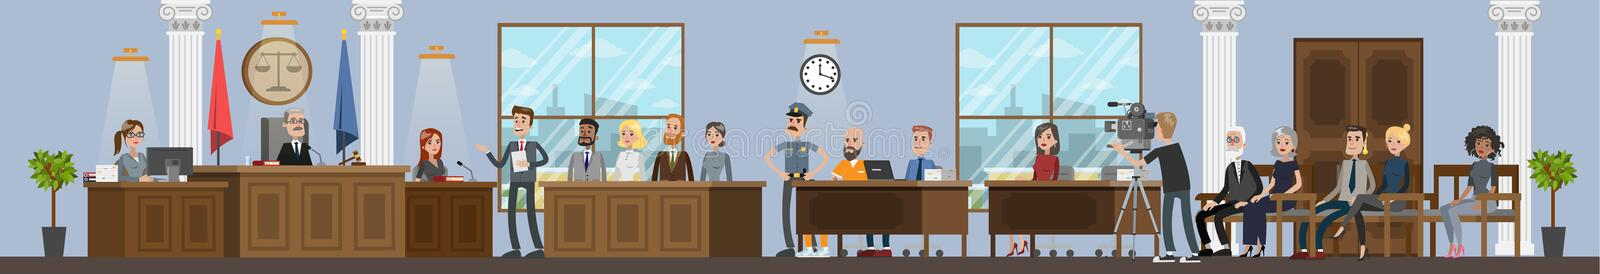 Court building interior with courtroom. Trial process. With judge, jury and suspect. Lawyer or attorney giving a speech. Vector flat illustration stock illustration